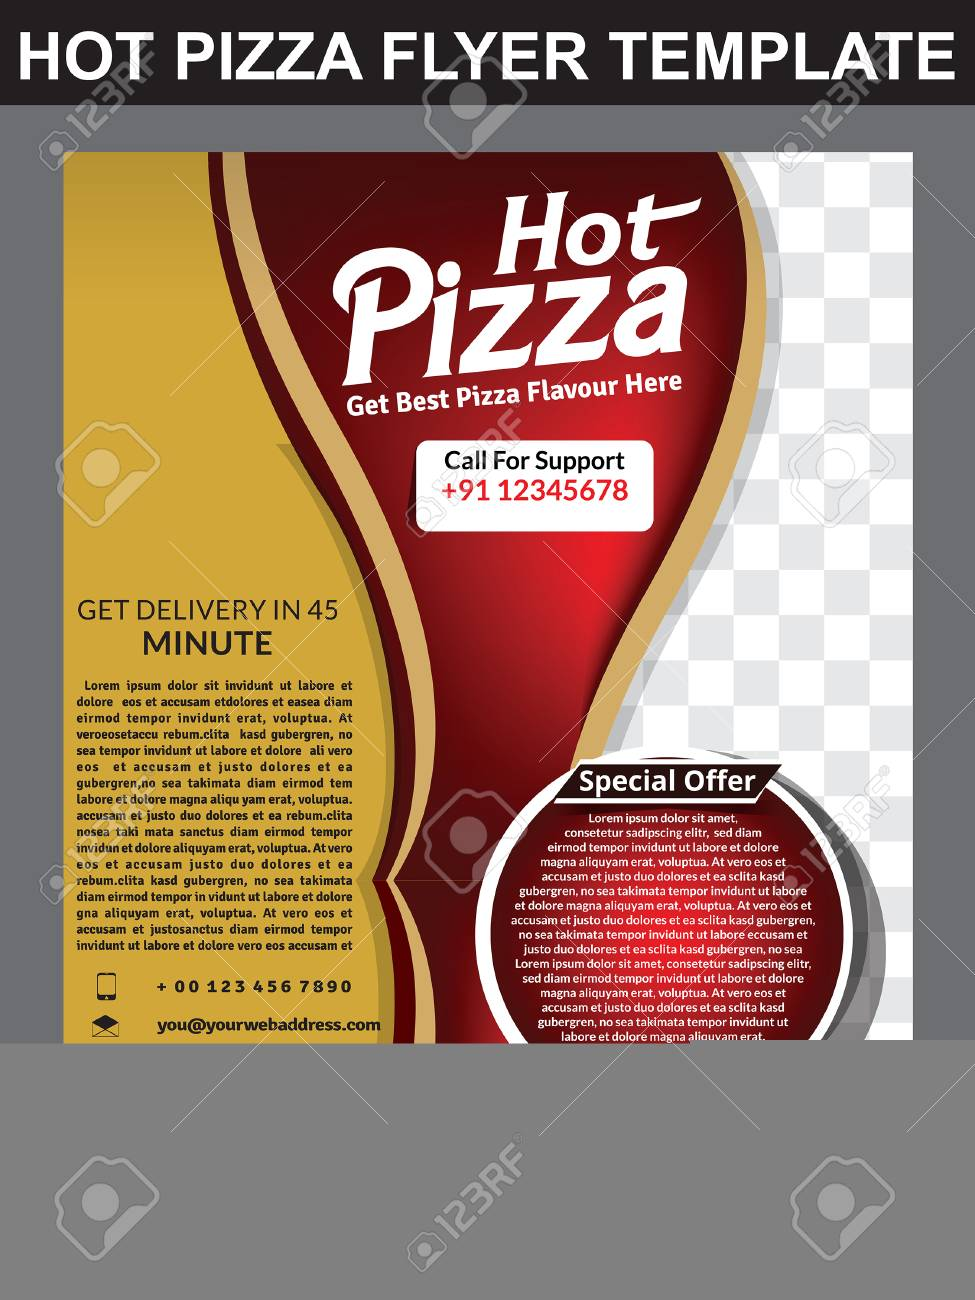 hot pizza store flyer template design vector illustration stock vector 73862461